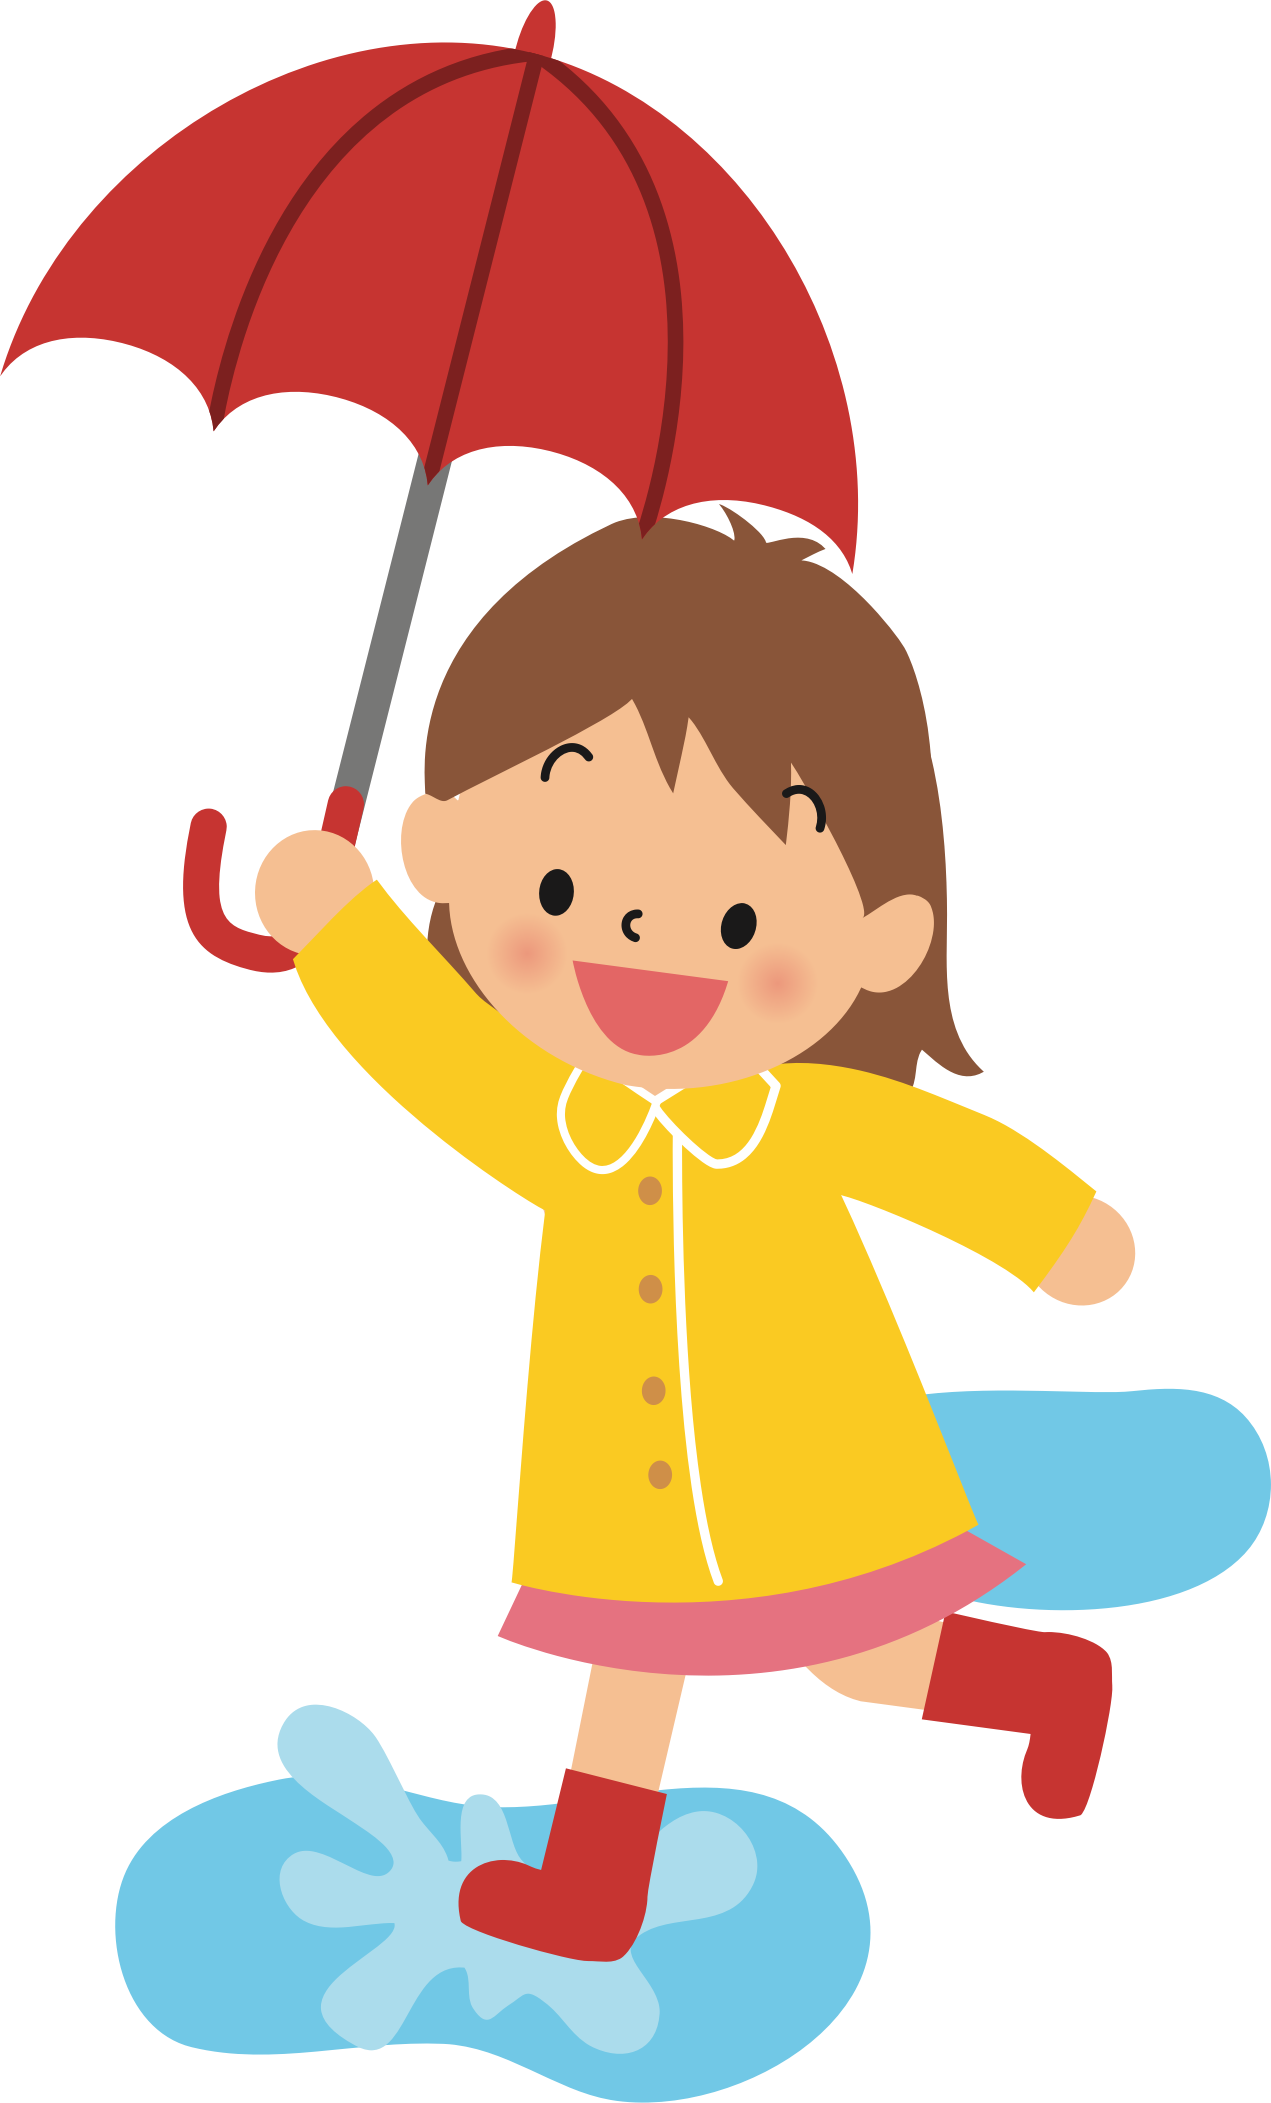 Clipart person cut out. Girl with umbrella silhouette